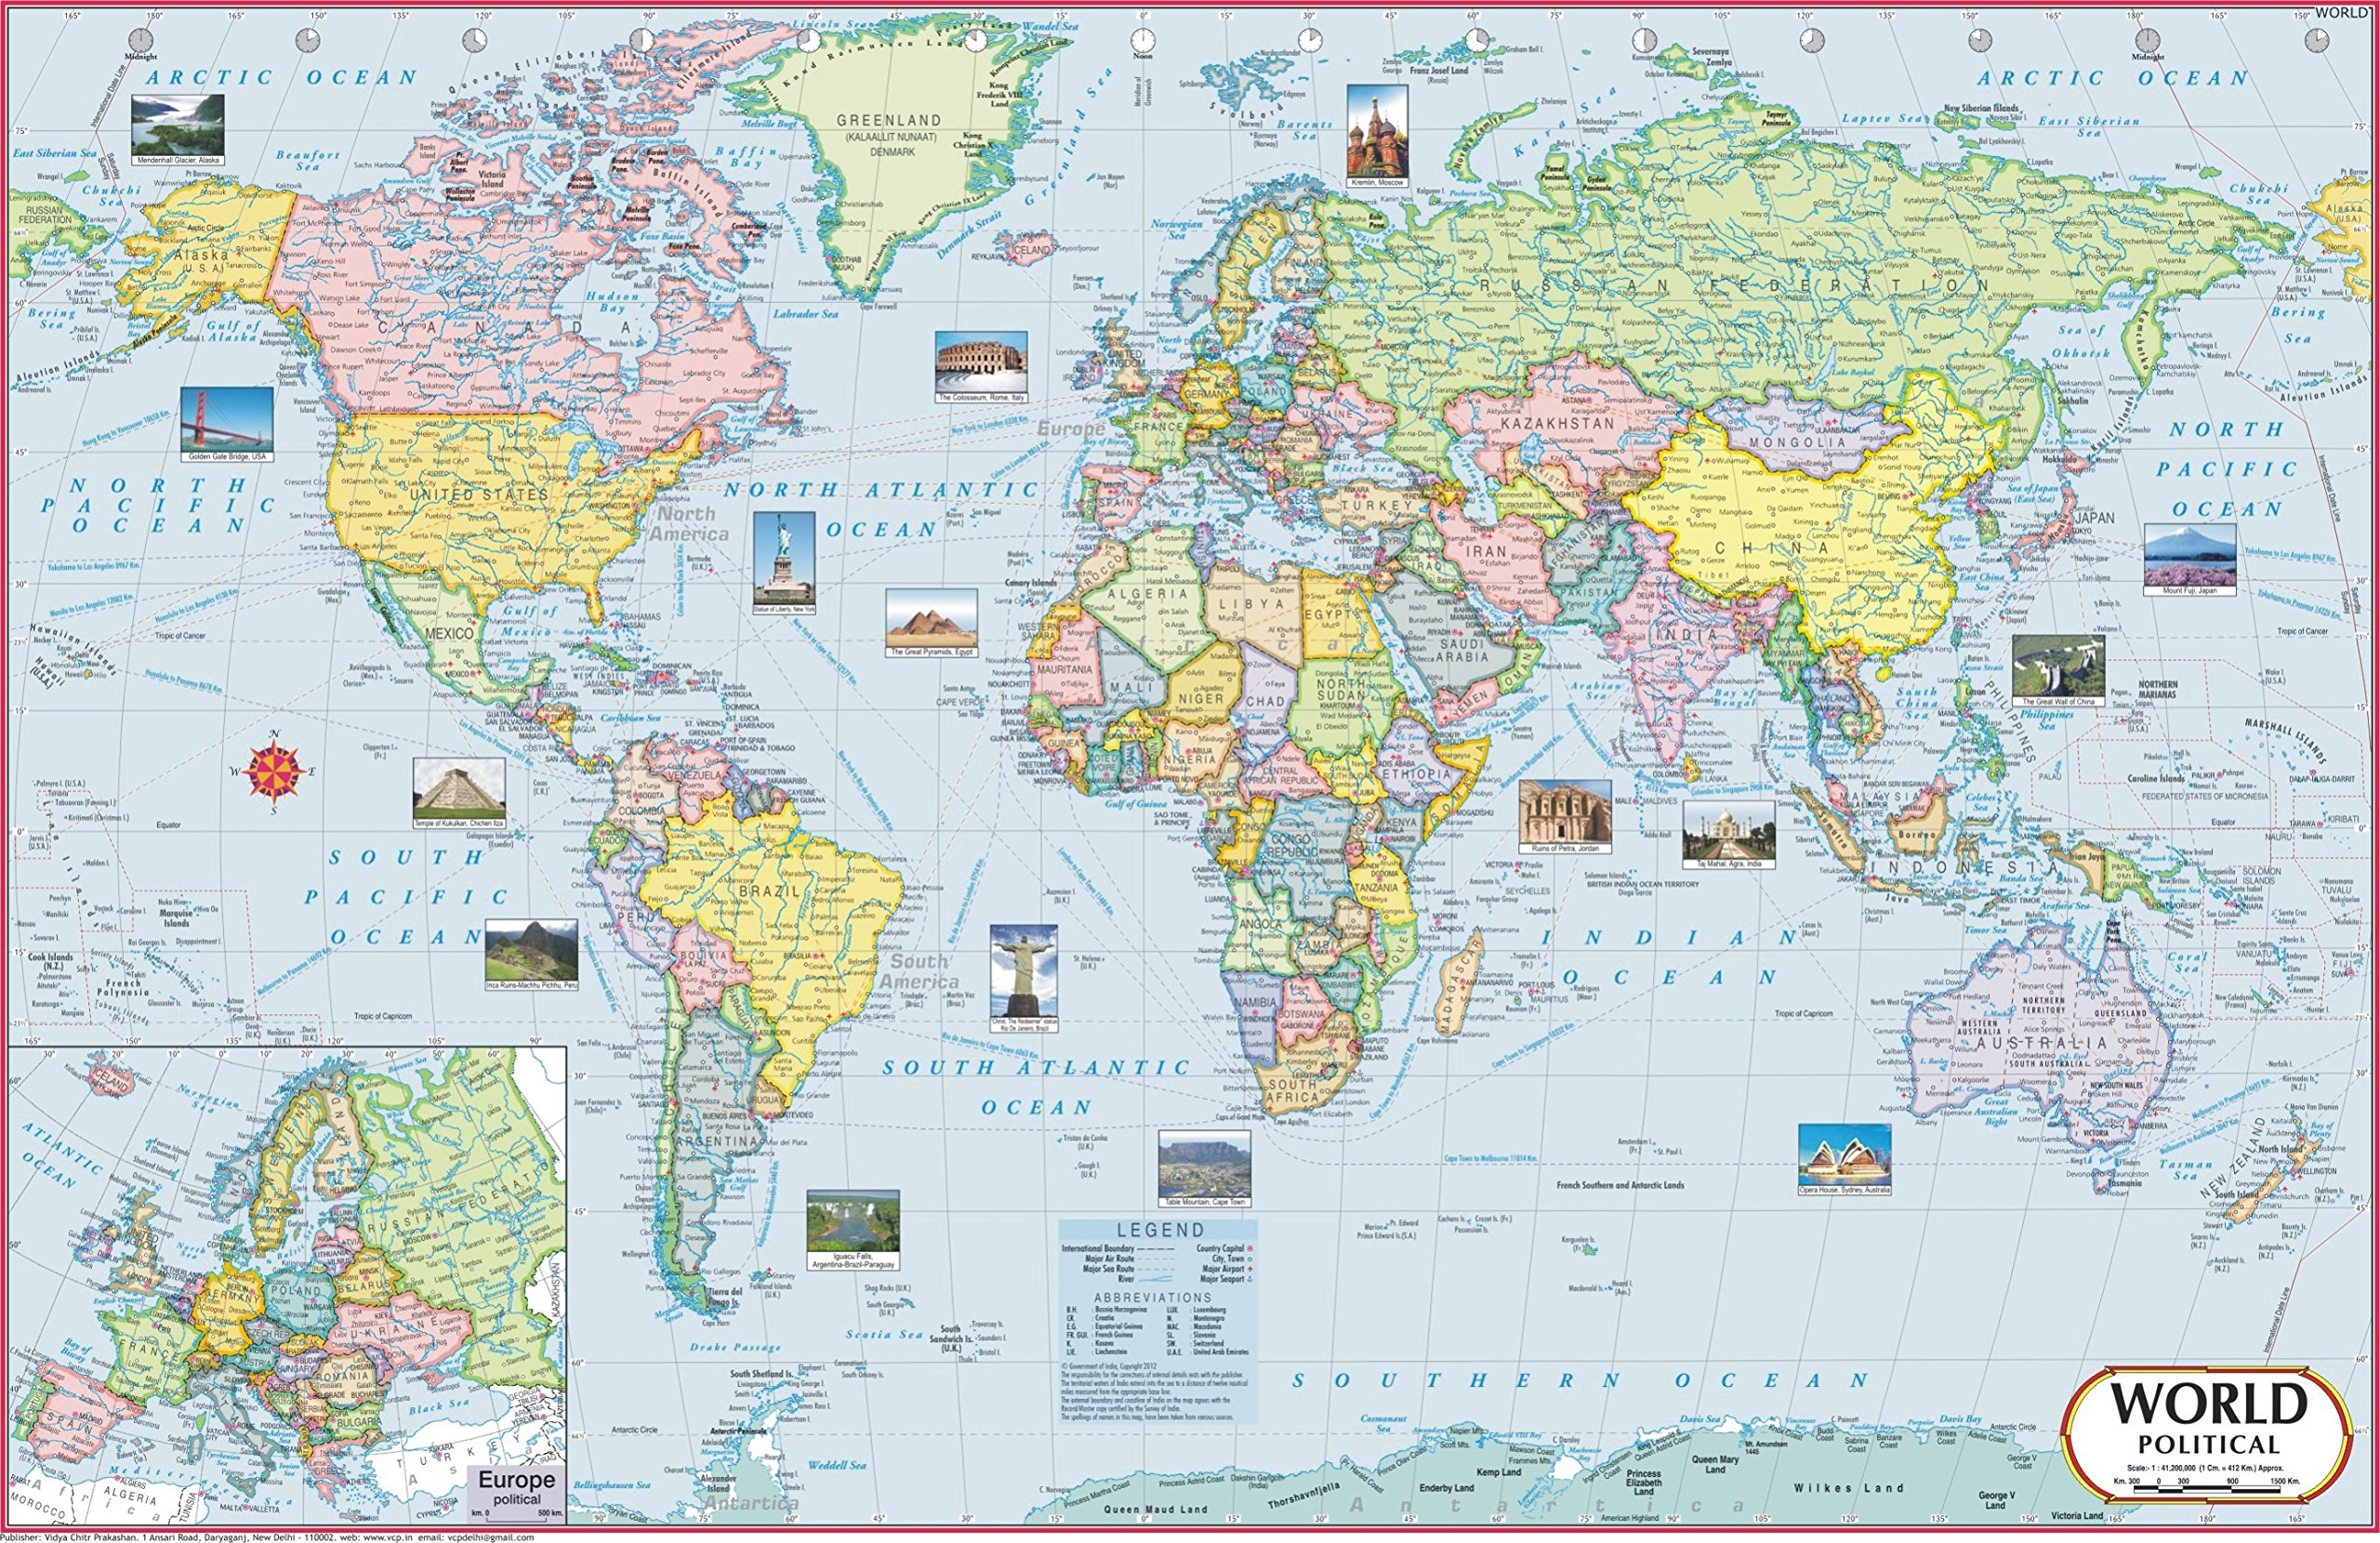 Buy World Map : Political ( 70 x 50 cm ) (World Map) Book Online at on topography of world, map outline world, political world map, license plate of world, world map time, oldmap of world, world map for pc, world map flash, continents of world, globe of world, region of world, water of world, physical map world, deserts of the world, atlas of world, free world map, rivers of the world, blank map world, biomes of the world, map madagascar, map with equator, cities of world, diagram of world, seven wonders of the world, geography world,